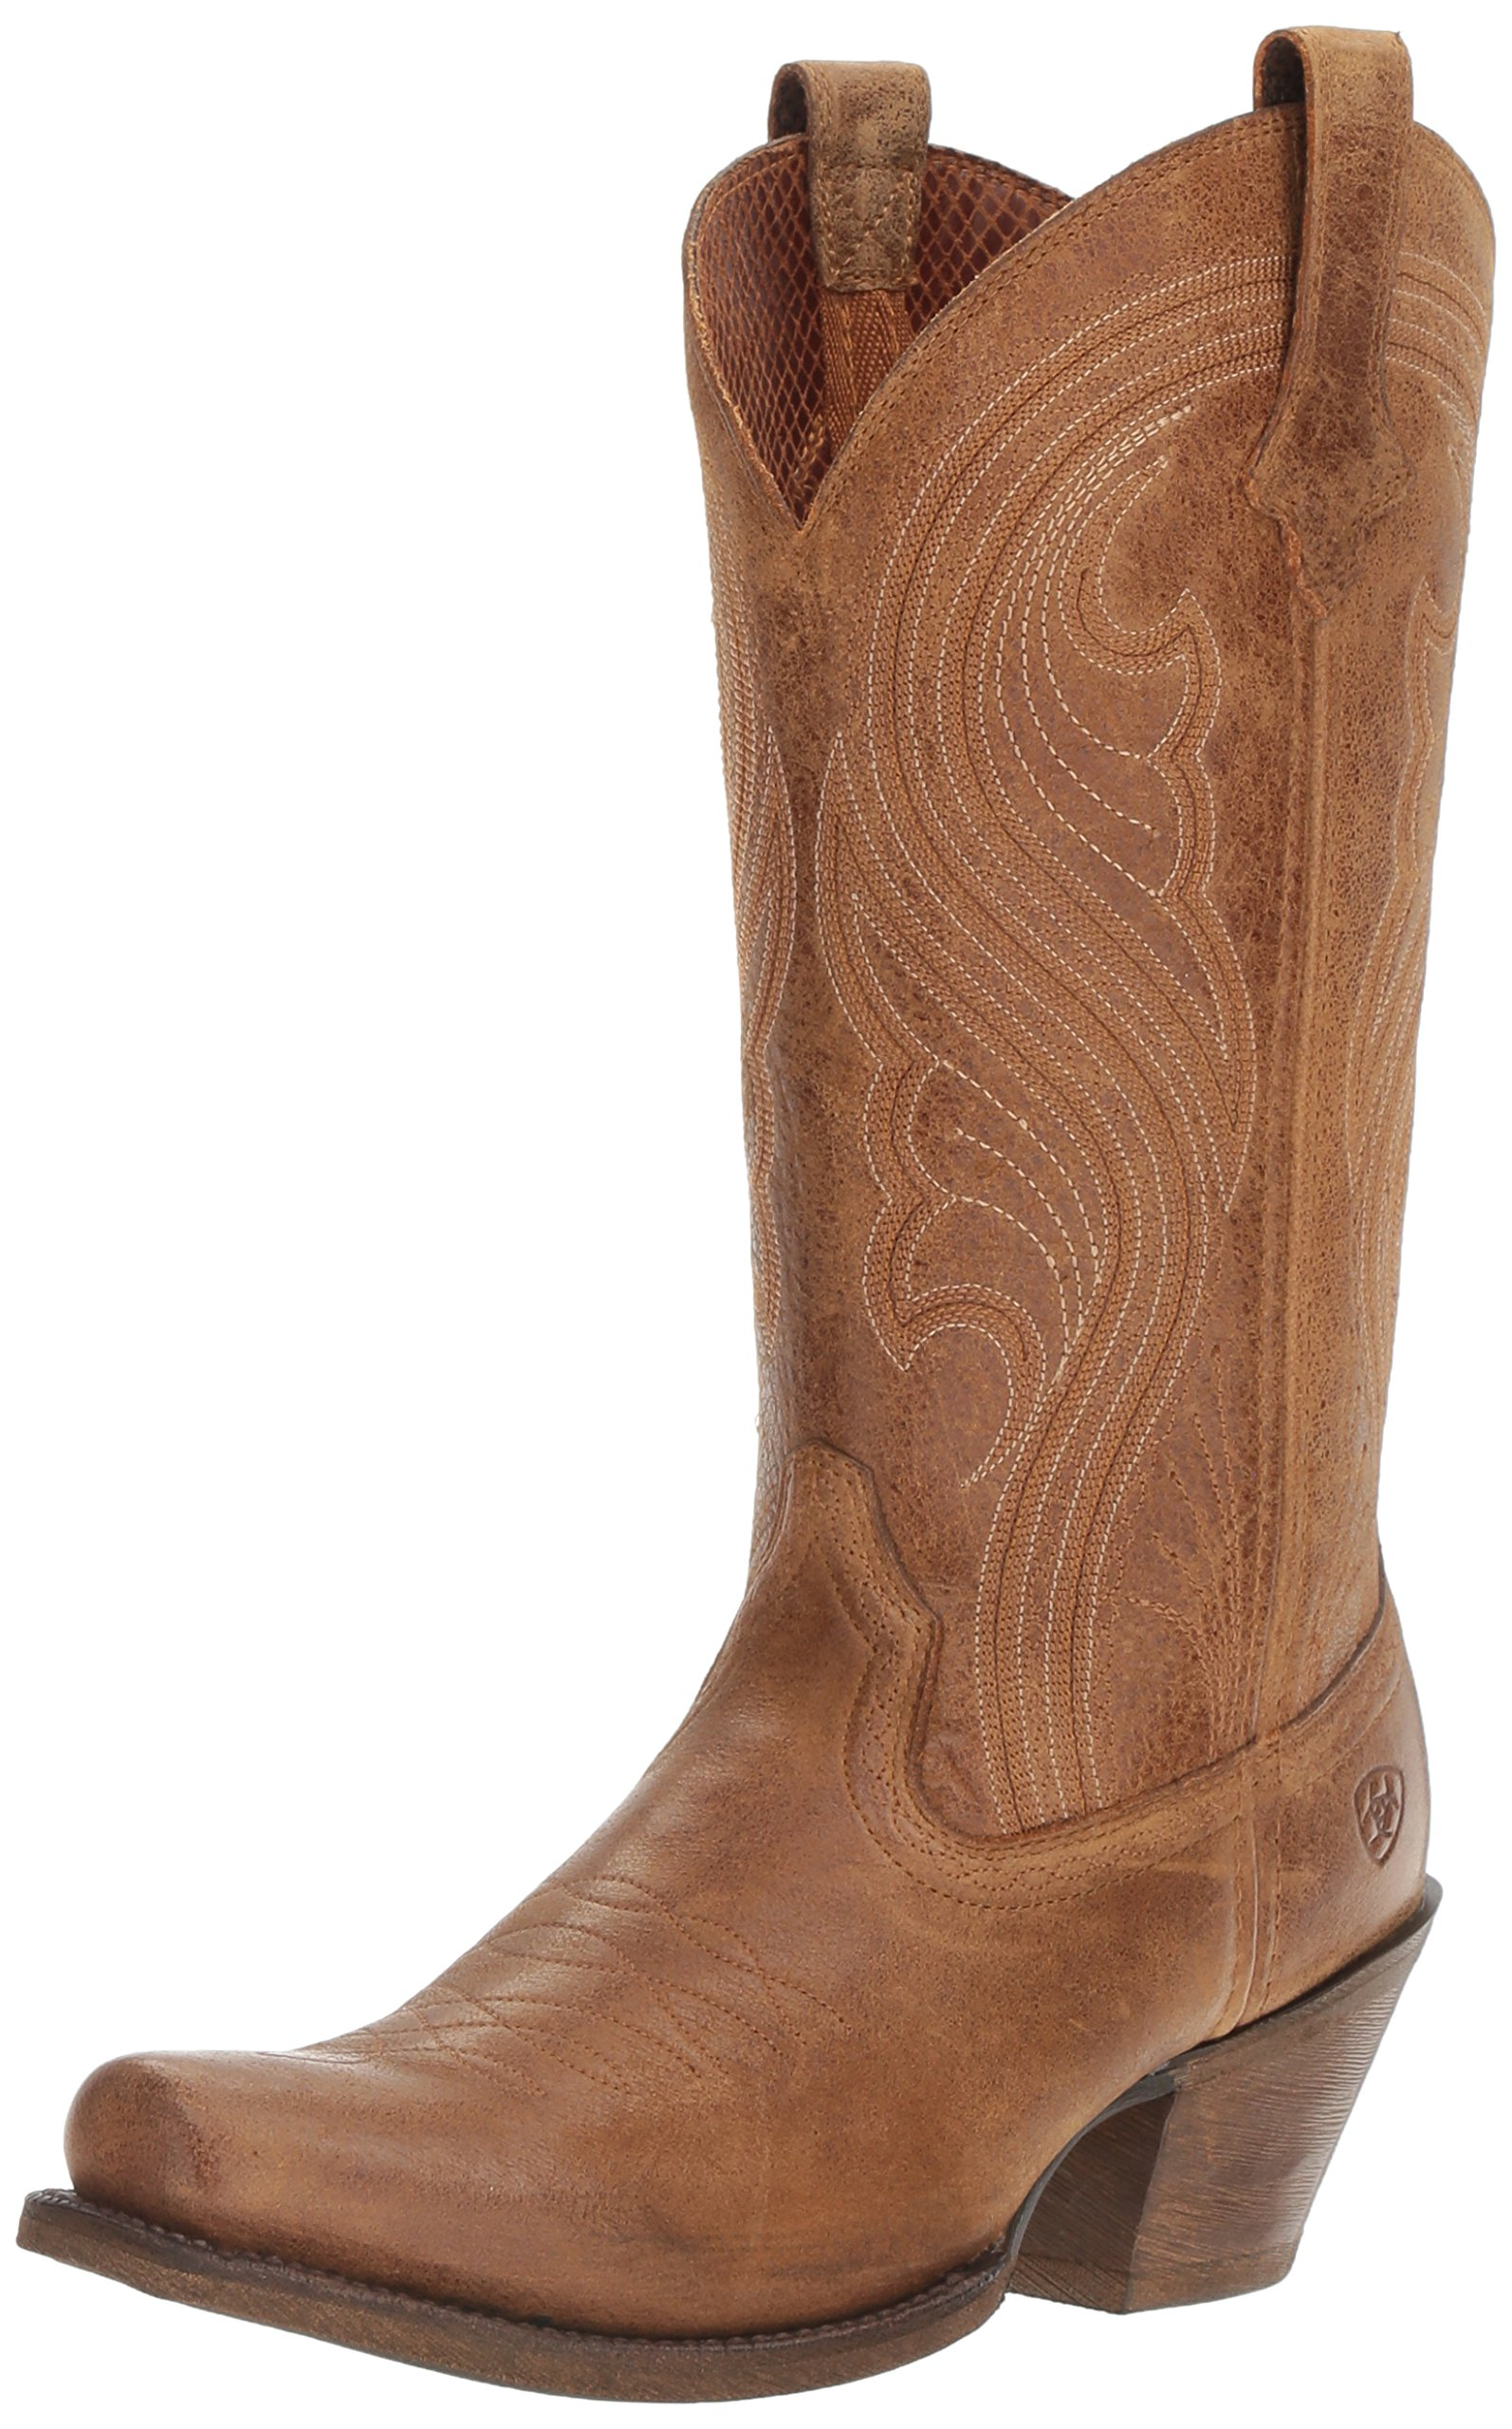 Ariat Women's Lively Western Cowboy Boot, Old West Brown, 7.5 B US by Ariat (Image #1)